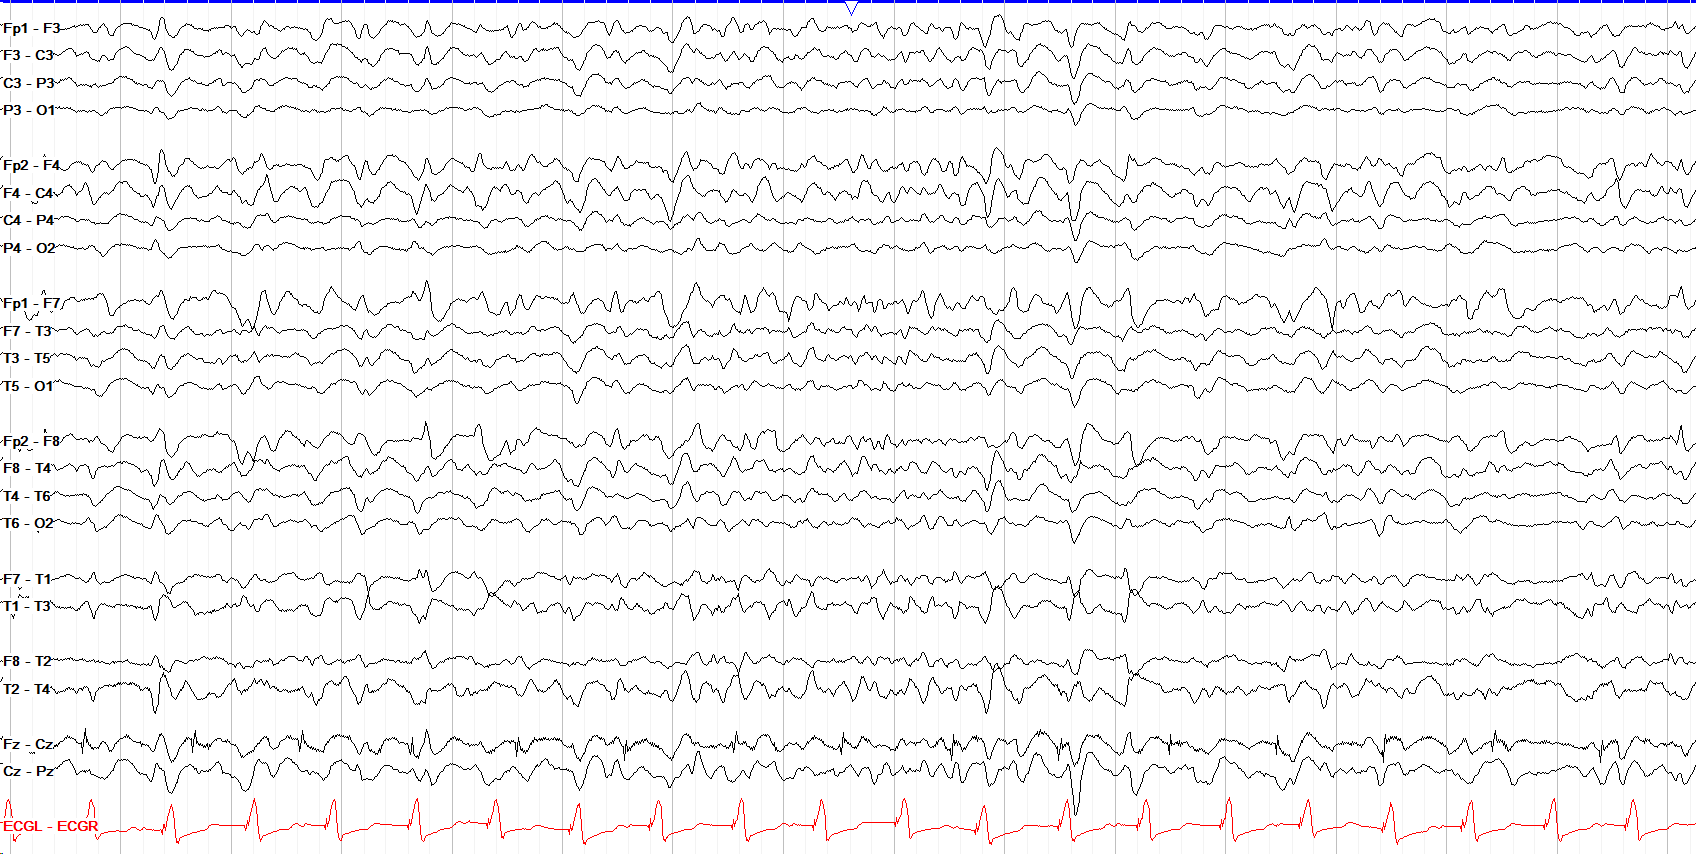 diffuse excess beta activity